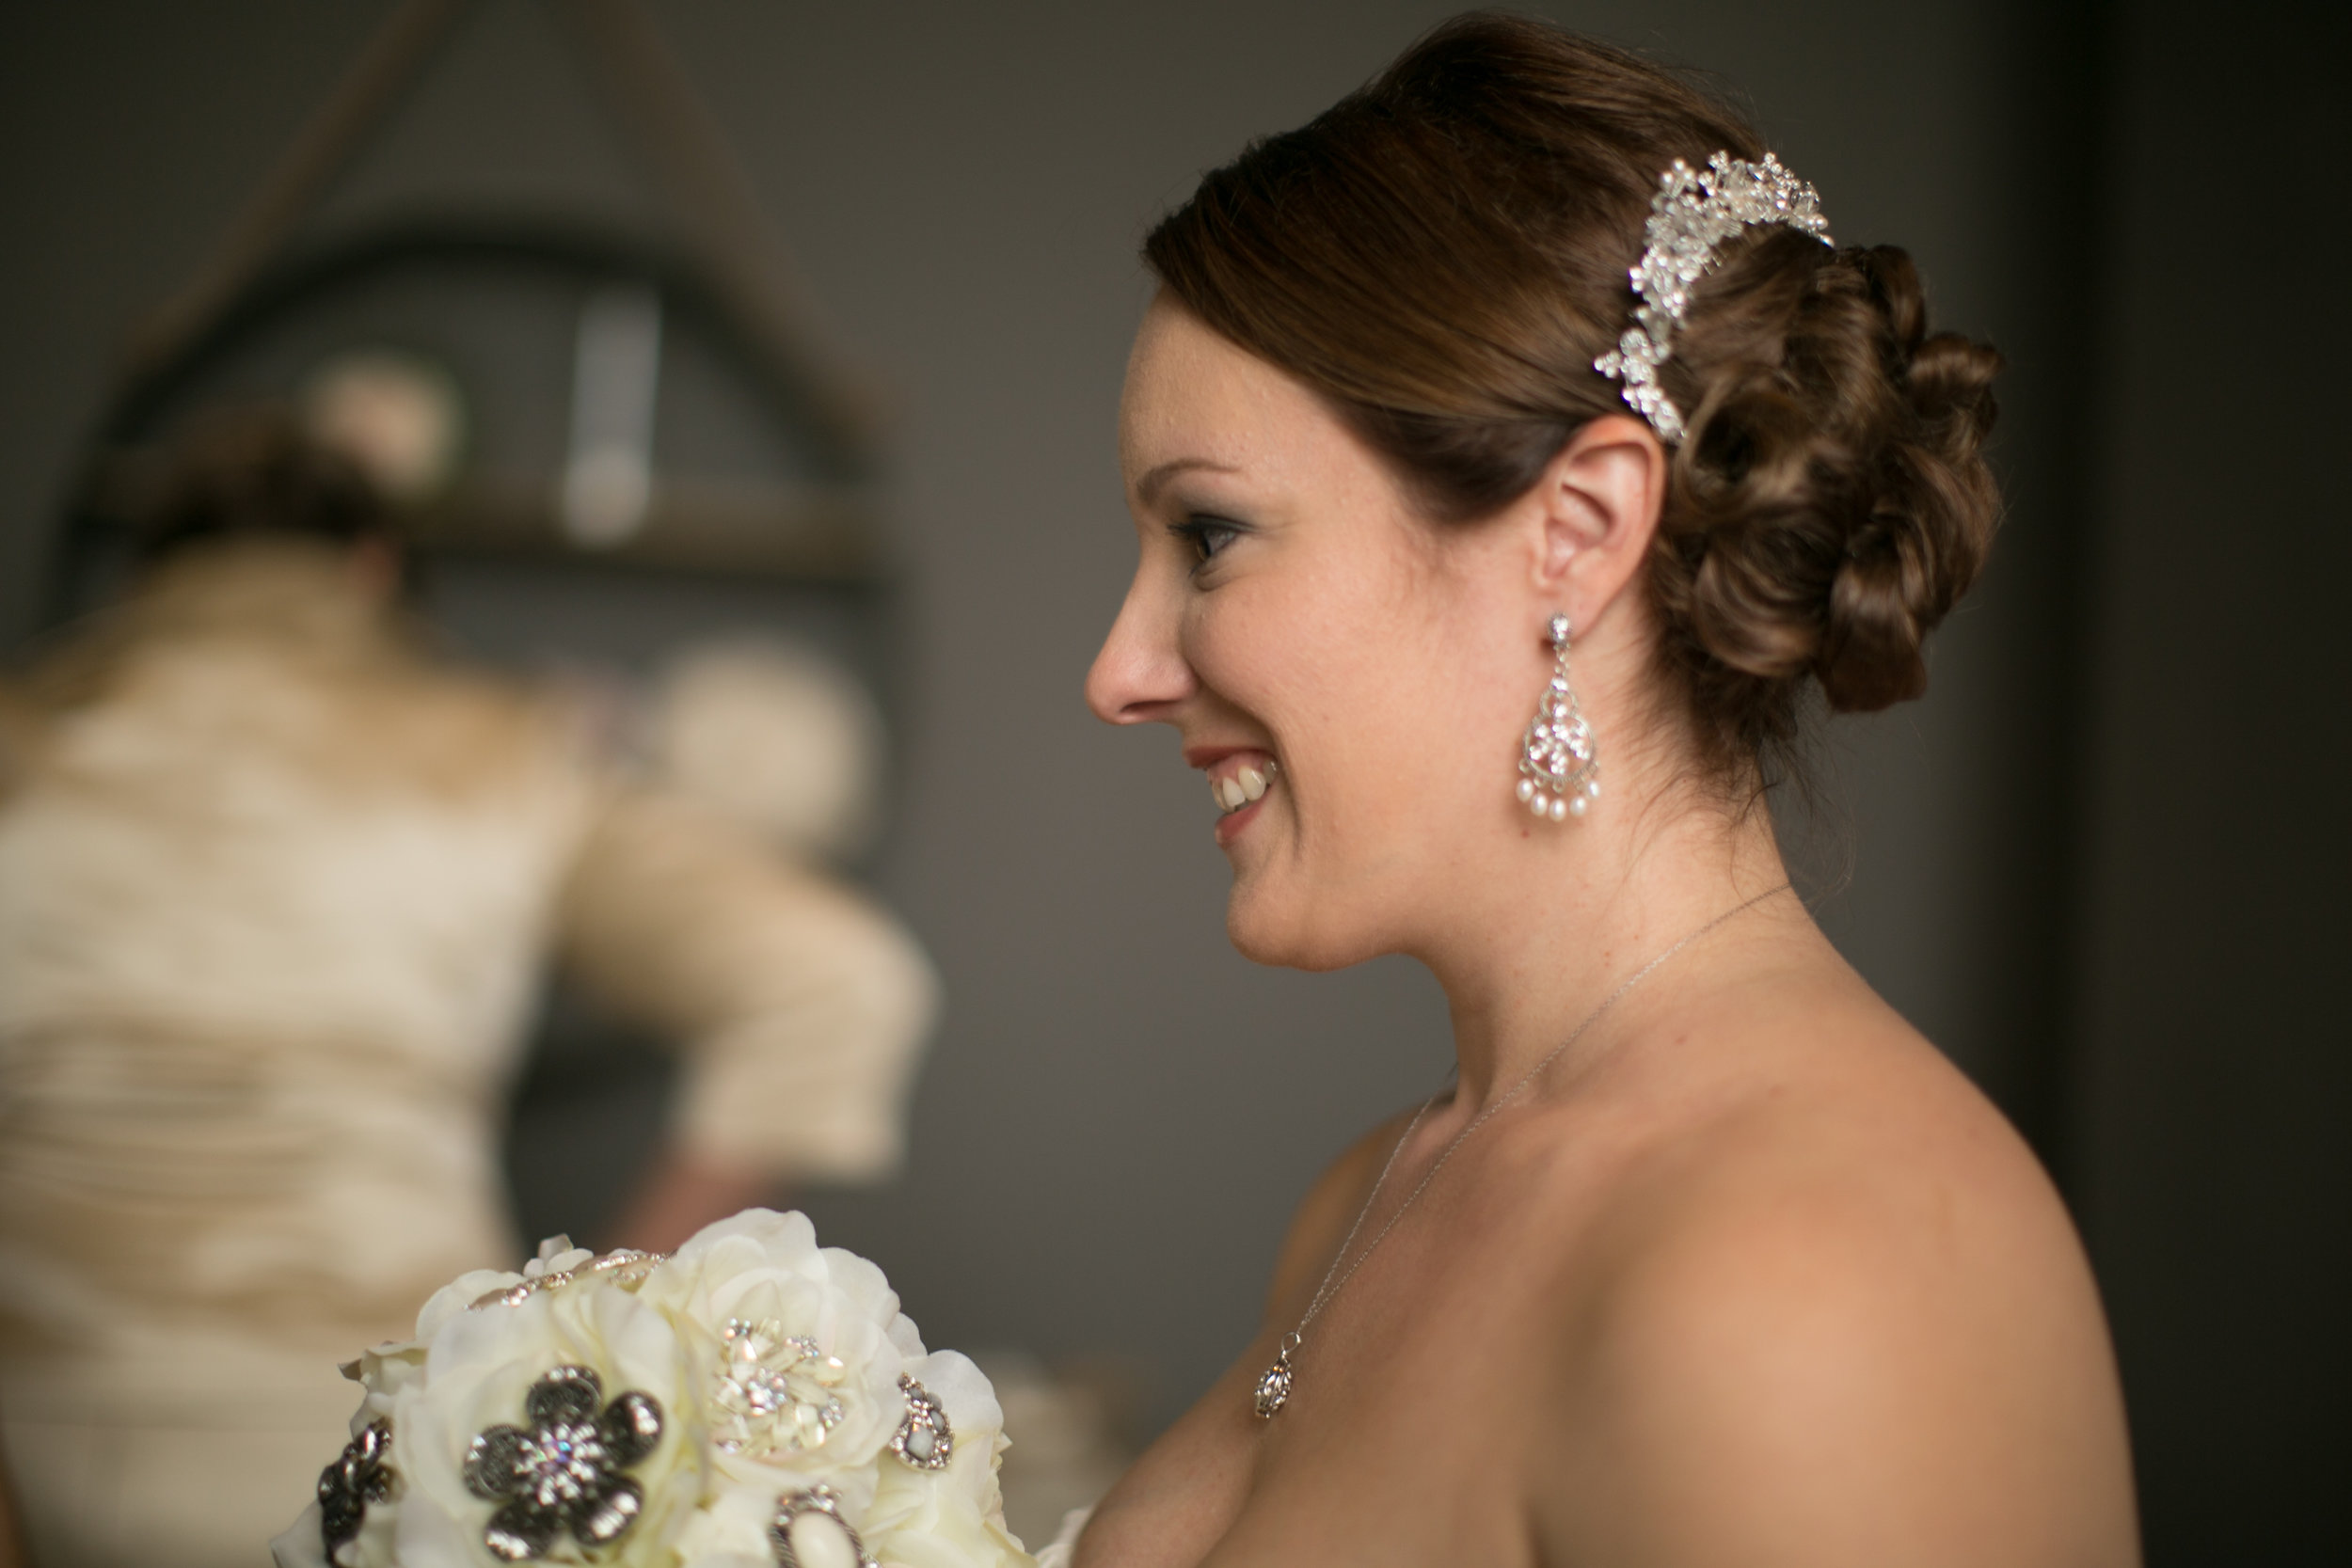 Sarah completed her look with chandelier earrings & a flashy hairpiece!